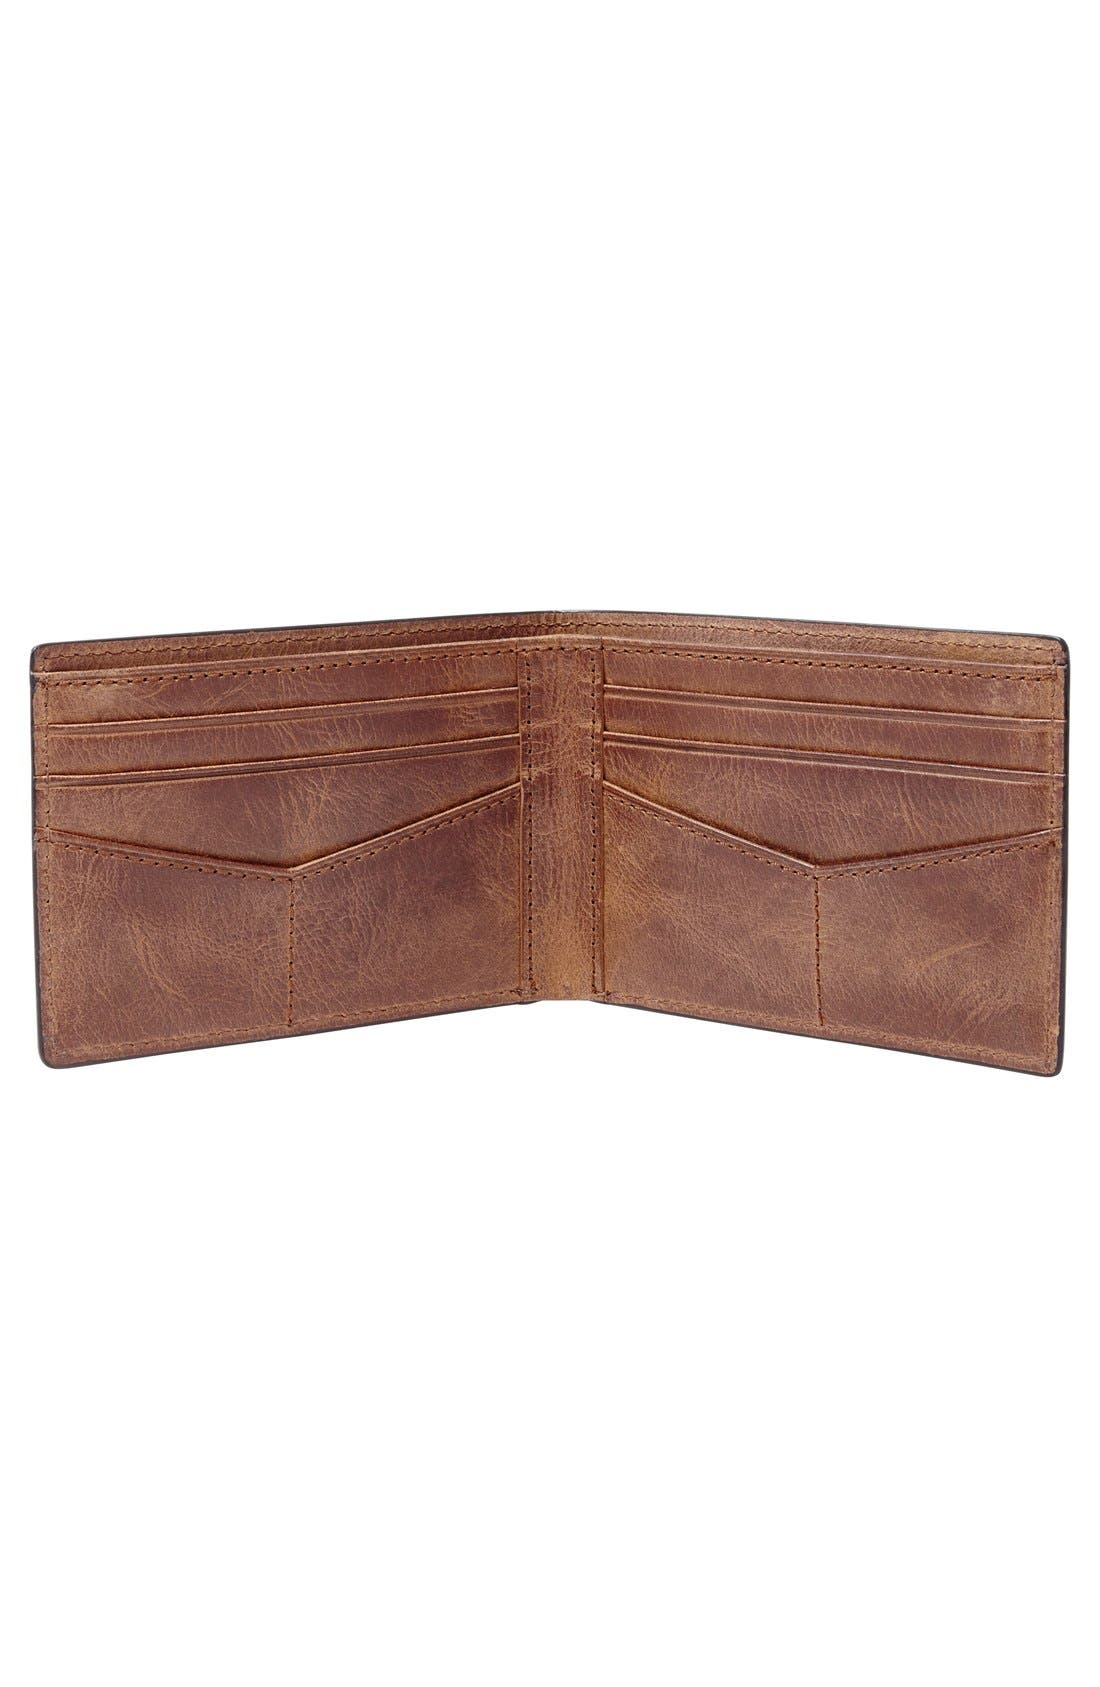 'Derrick' Leather Front Pocket Bifold Wallet,                             Alternate thumbnail 2, color,                             200